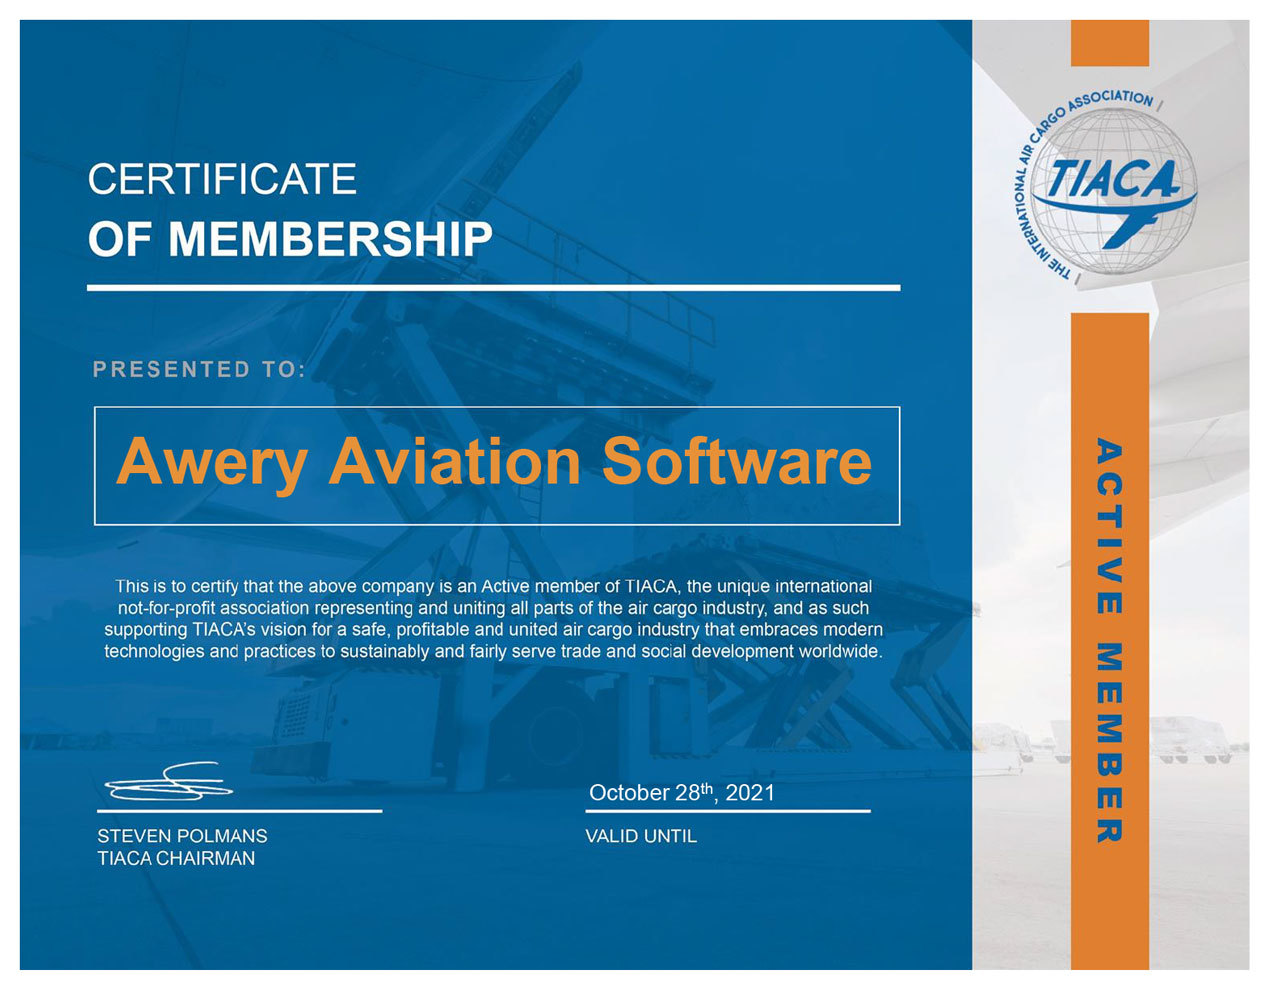 Awery Software is now an official member of TIACA